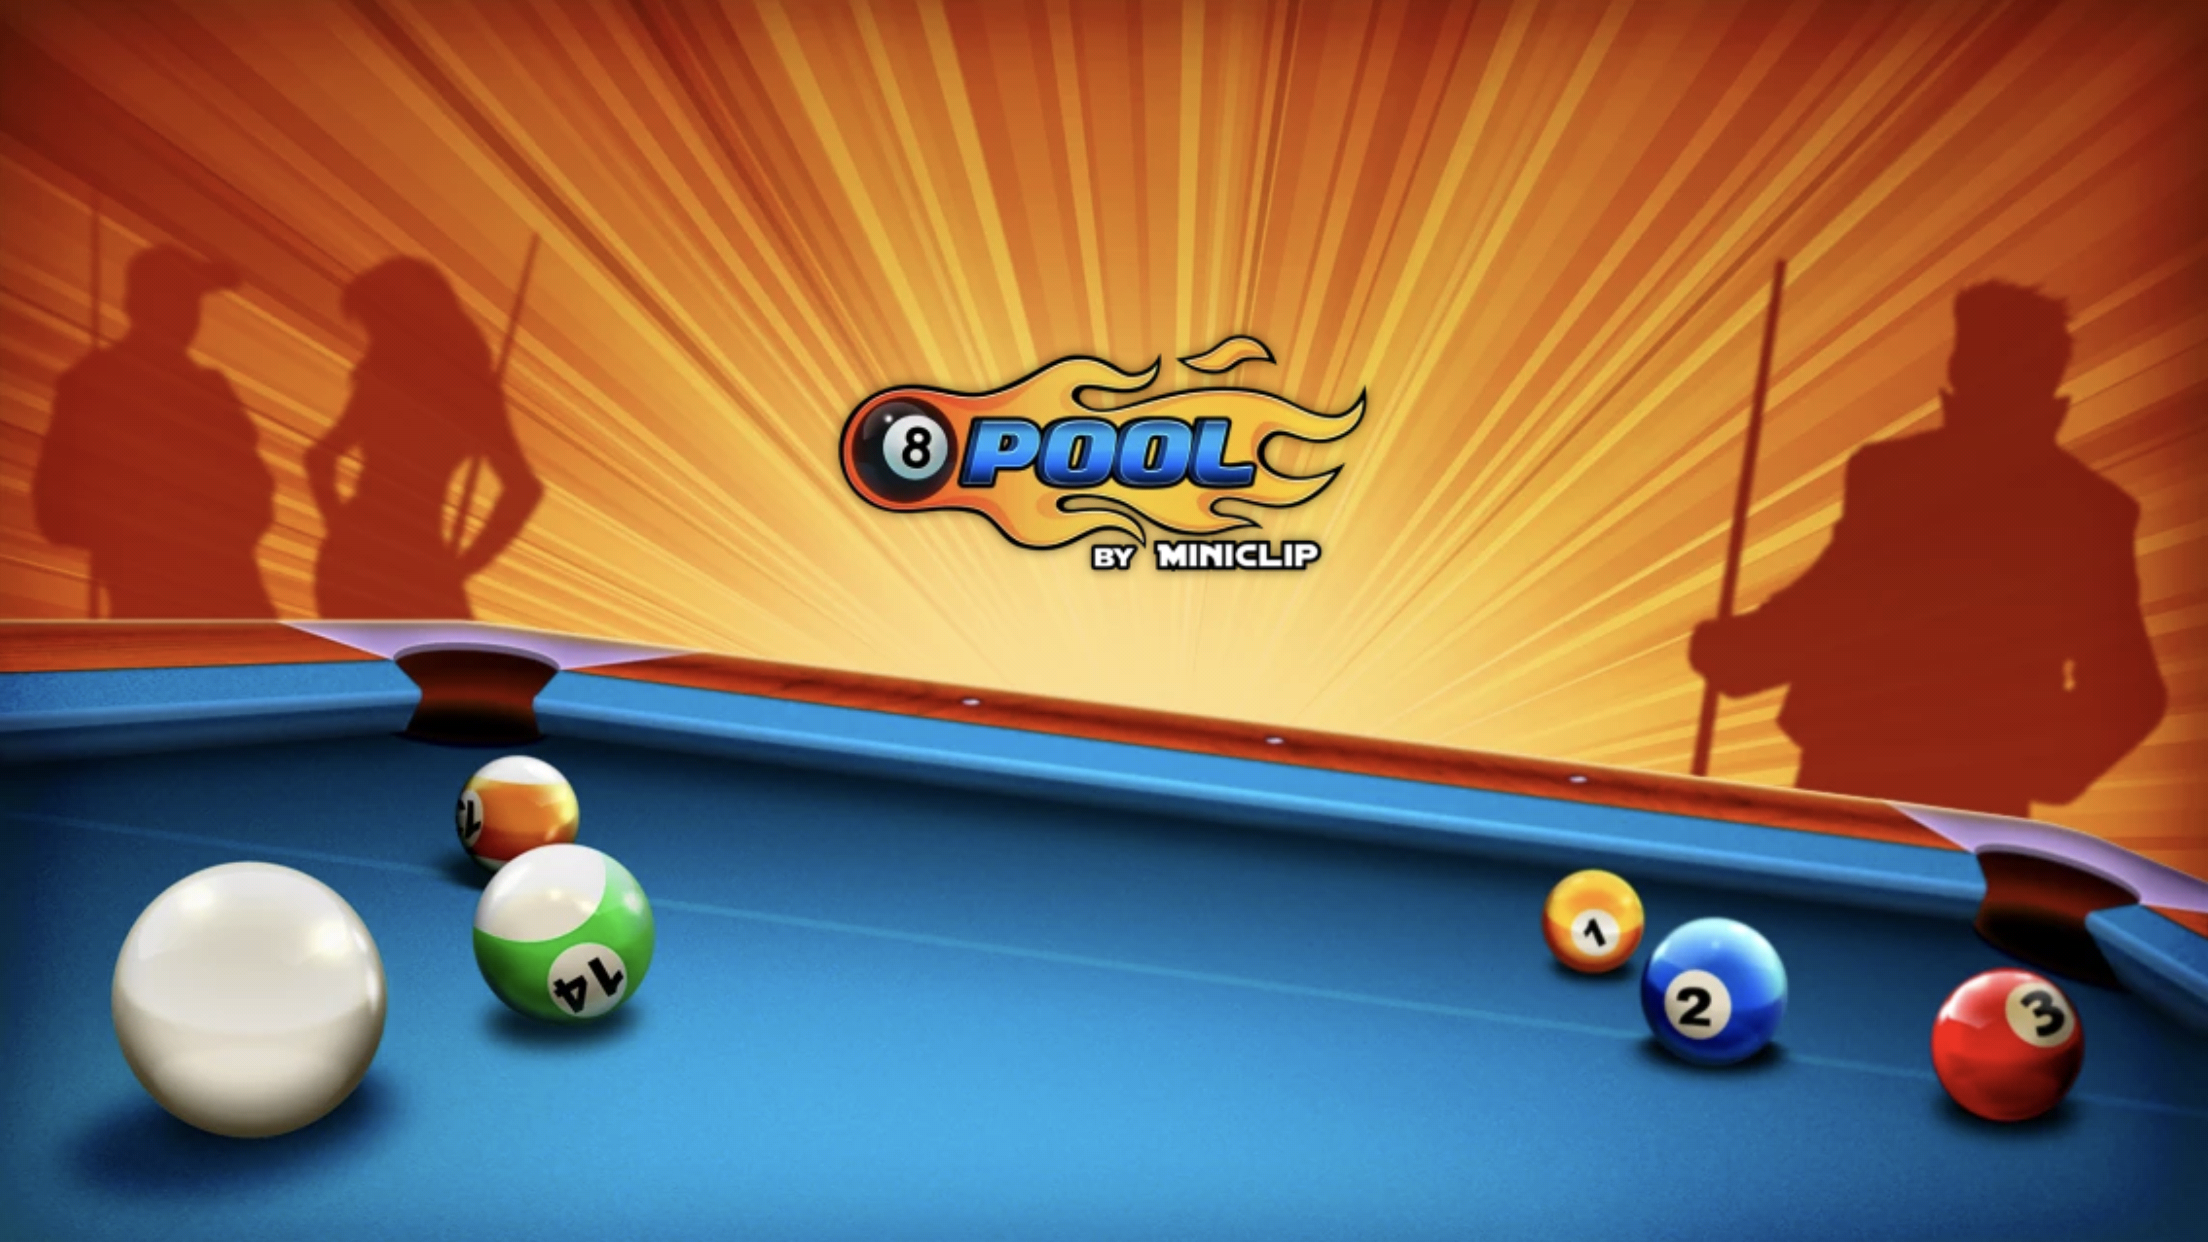 8 Ball Pool by Miniclip - Gameplay Review & Tips To Help You